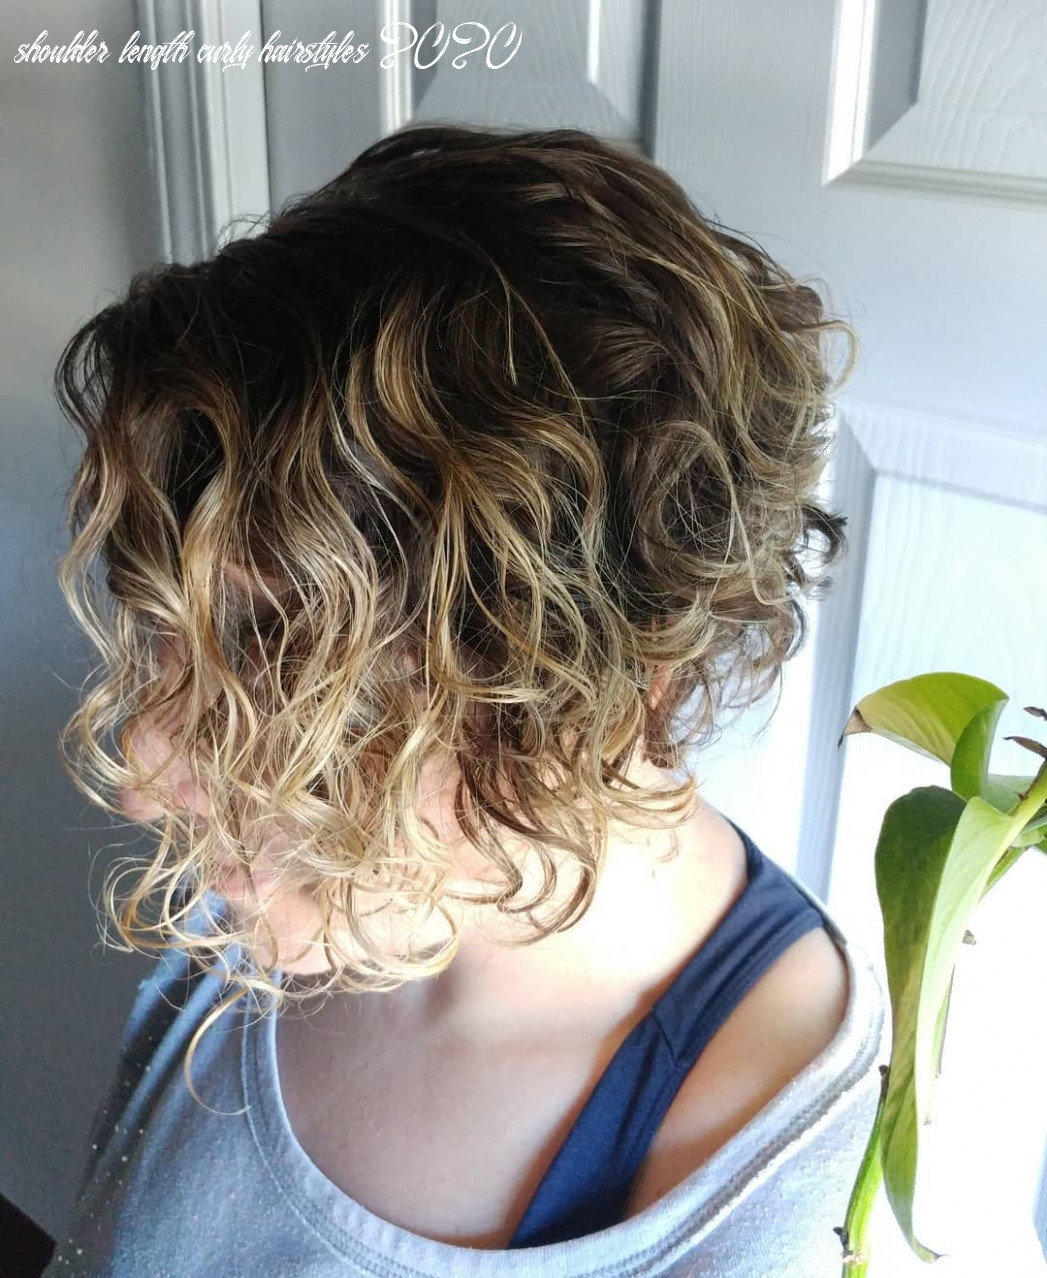 Long curly hairstyles 9 shoulder length curly hairstyles 2020